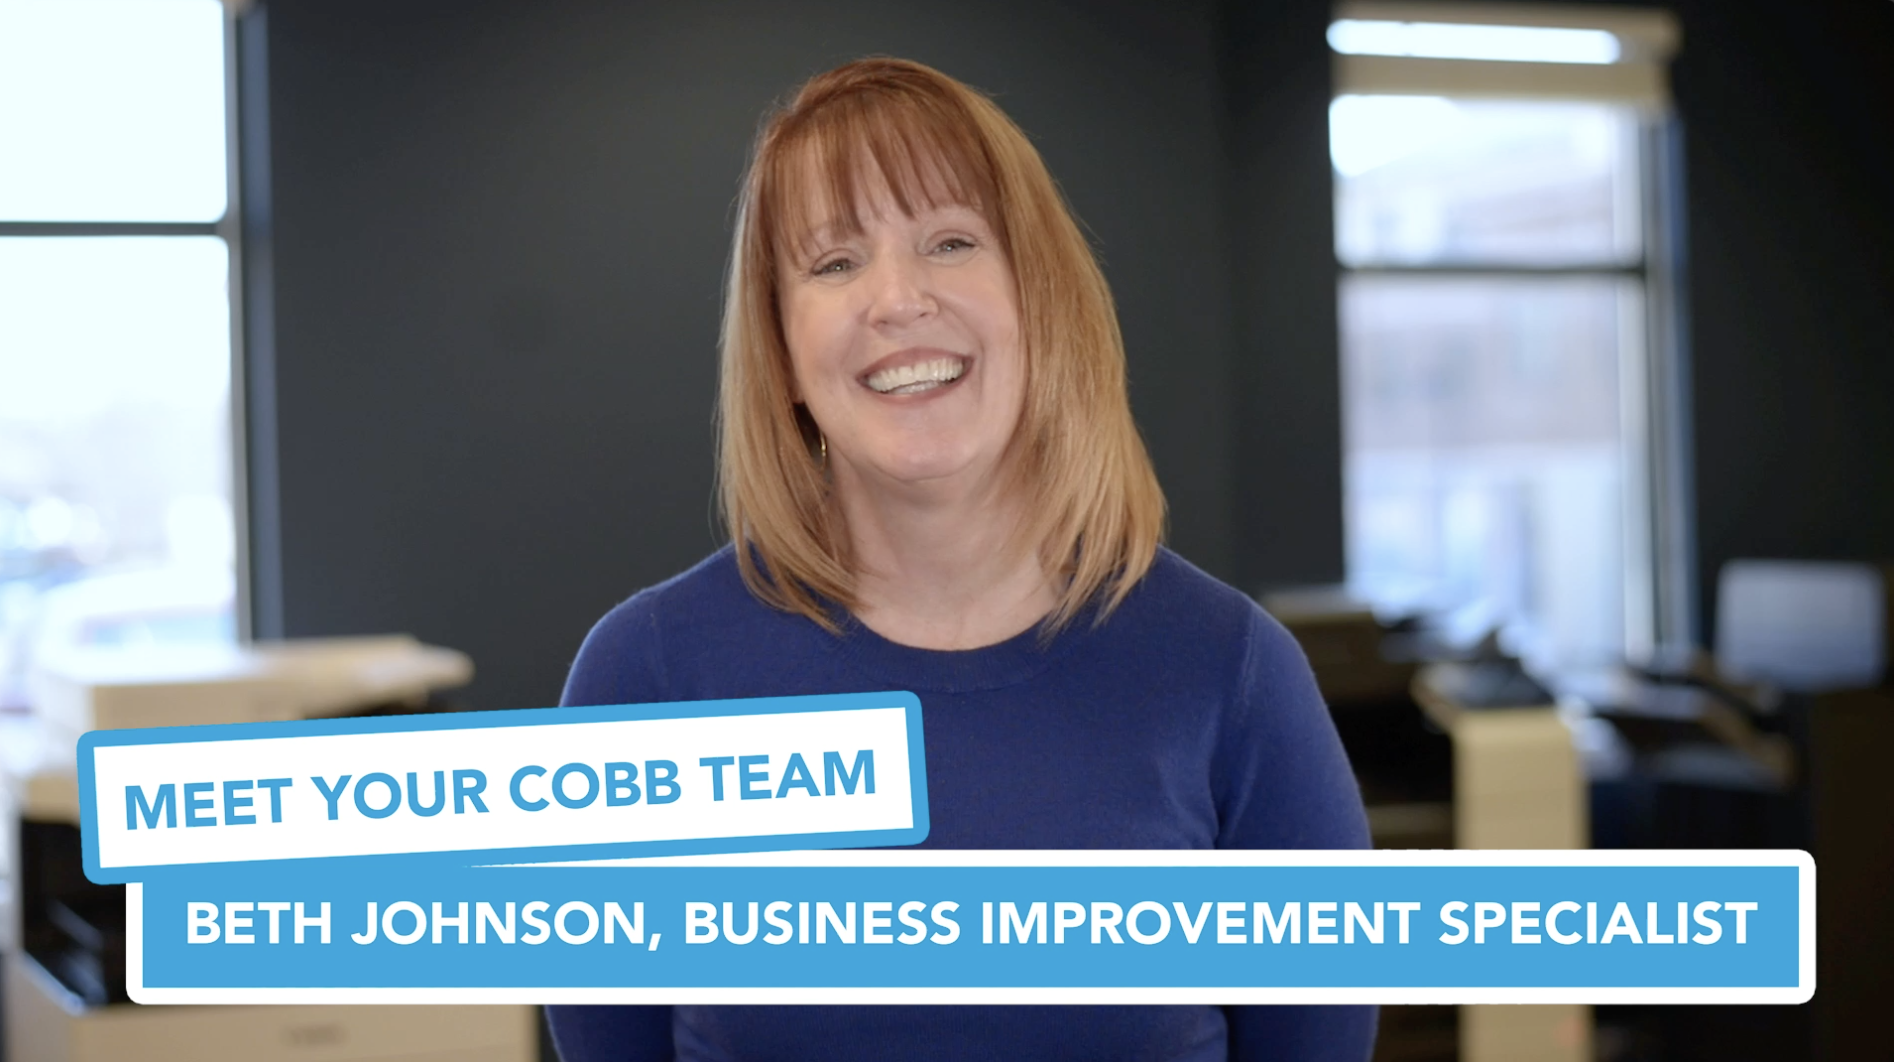 Meet Your Cobb Team: Beth Johnson, Business Improvement Specialist